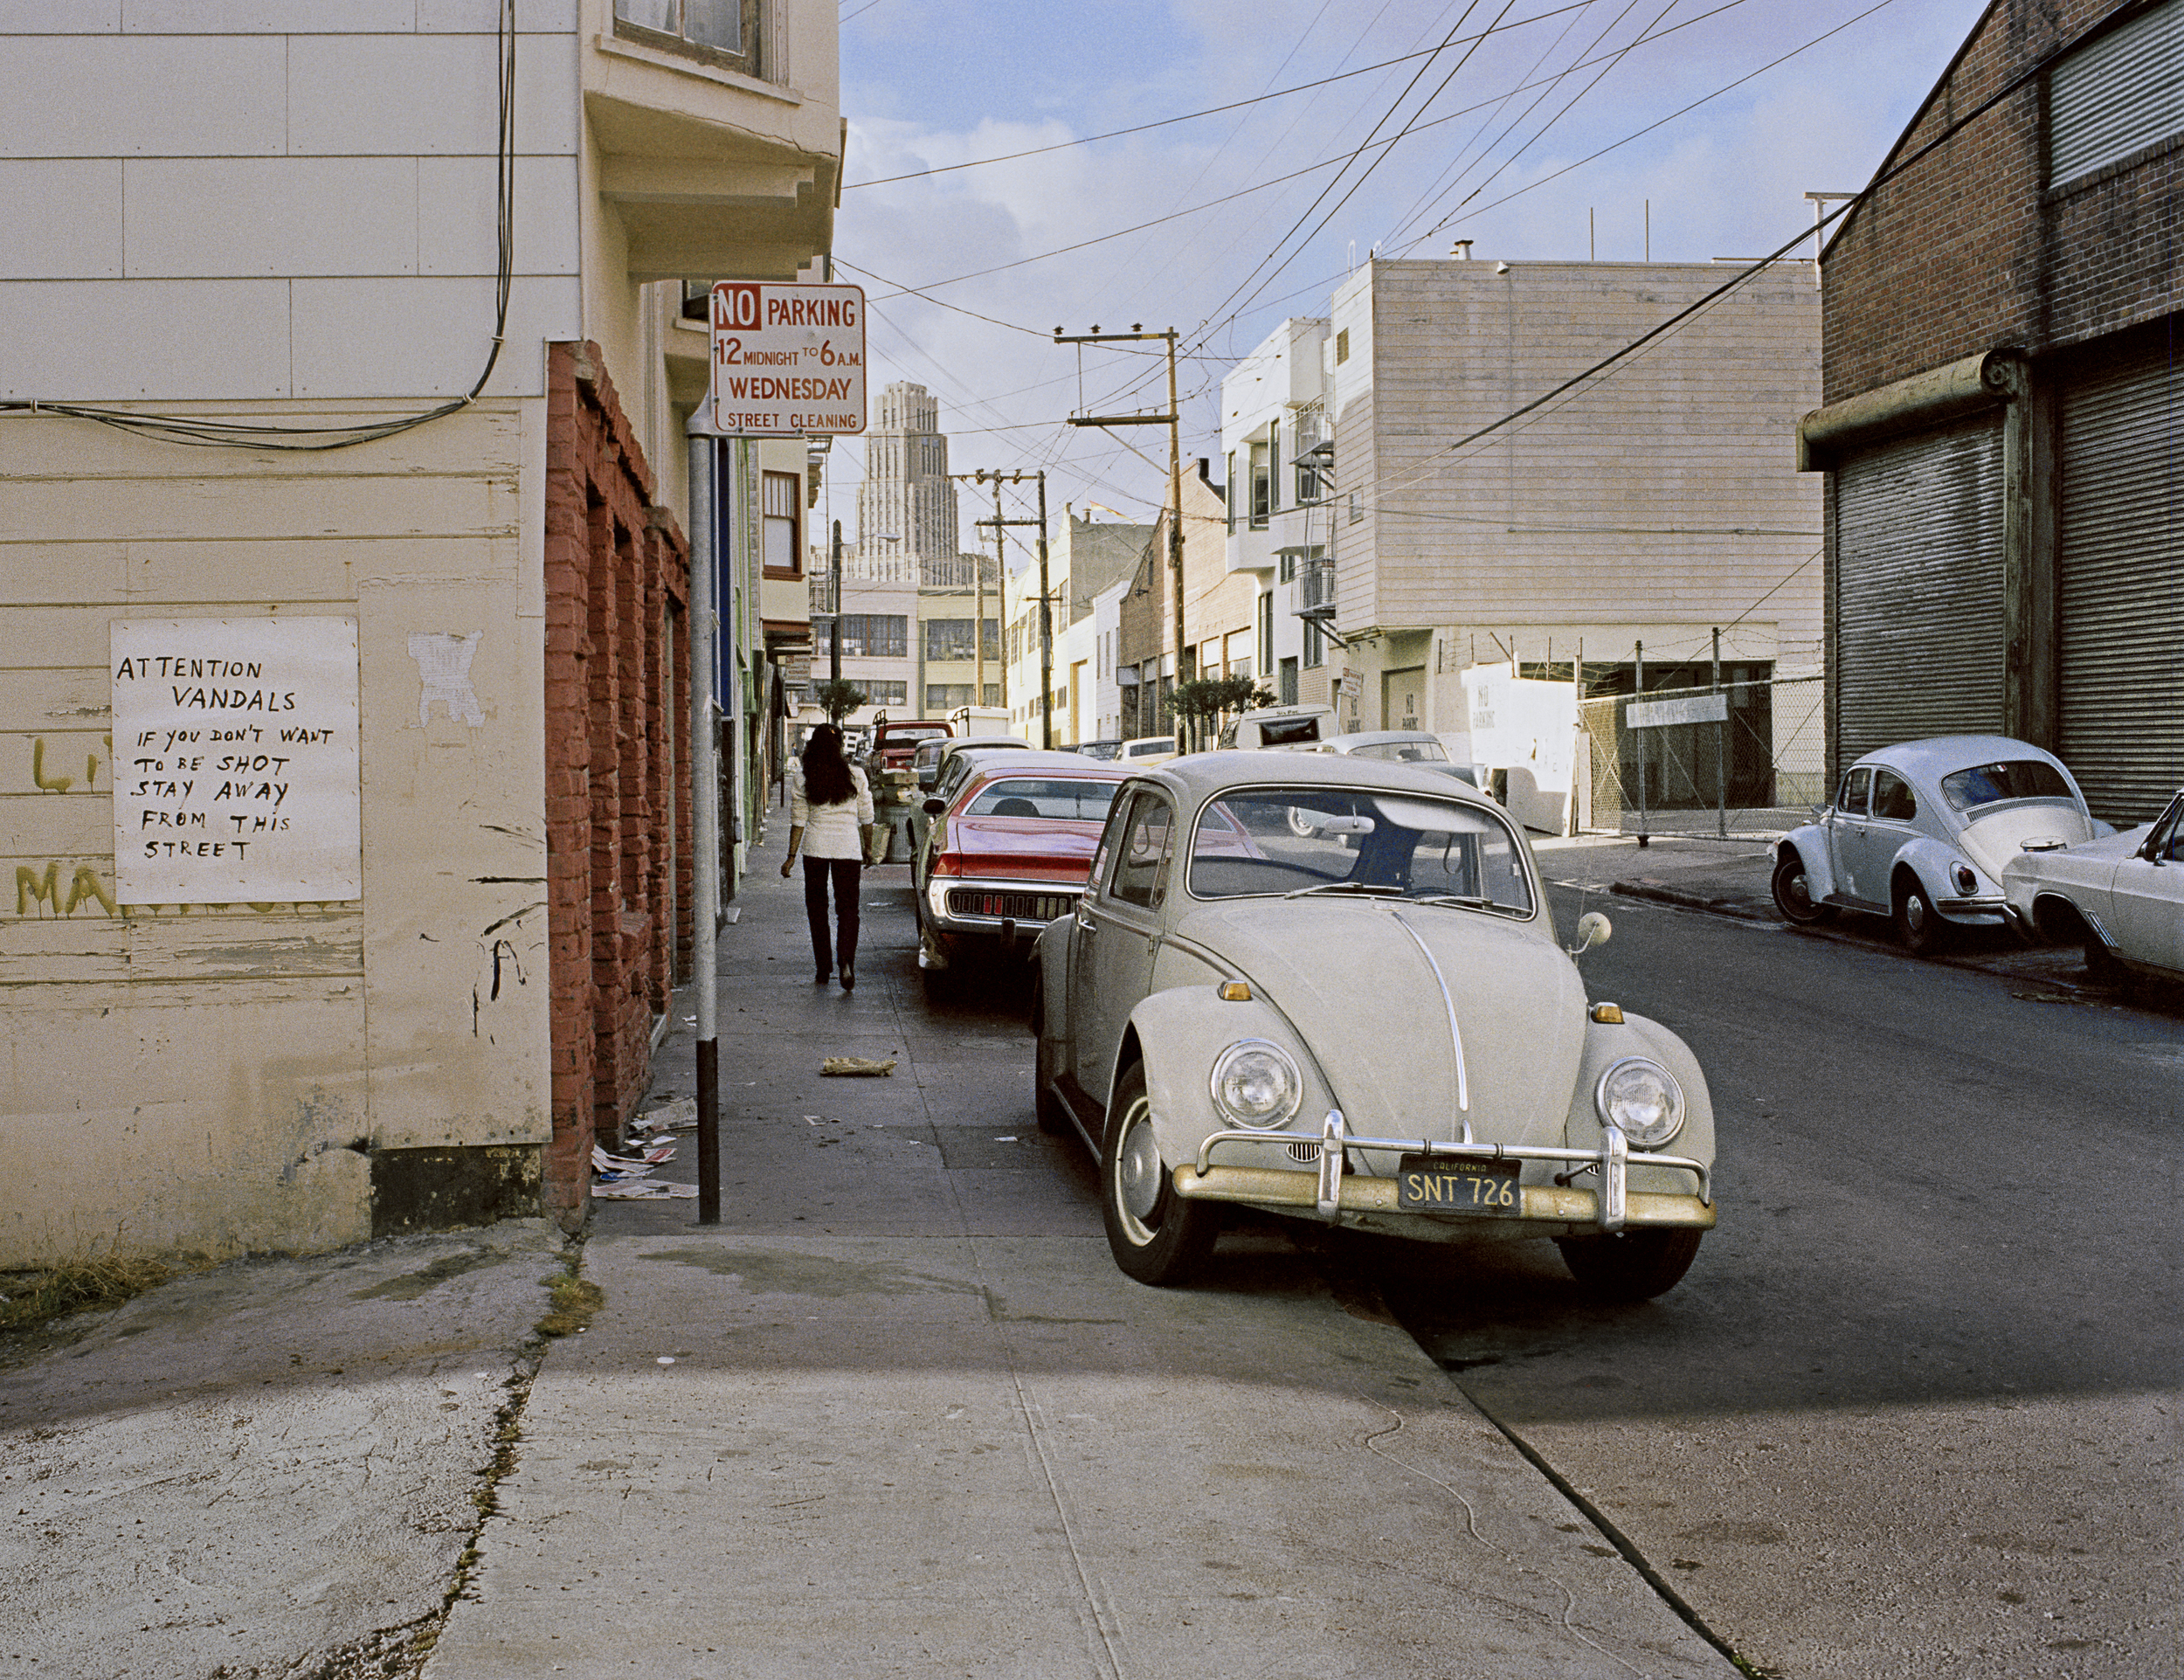 Langton between Folsom and Howard Street, 1979 Archival Pigment Print, 2016 16 x 20 inches, edition of 5 20 x 24 inches, edition of 2 30 x 40 inches, edition of 2